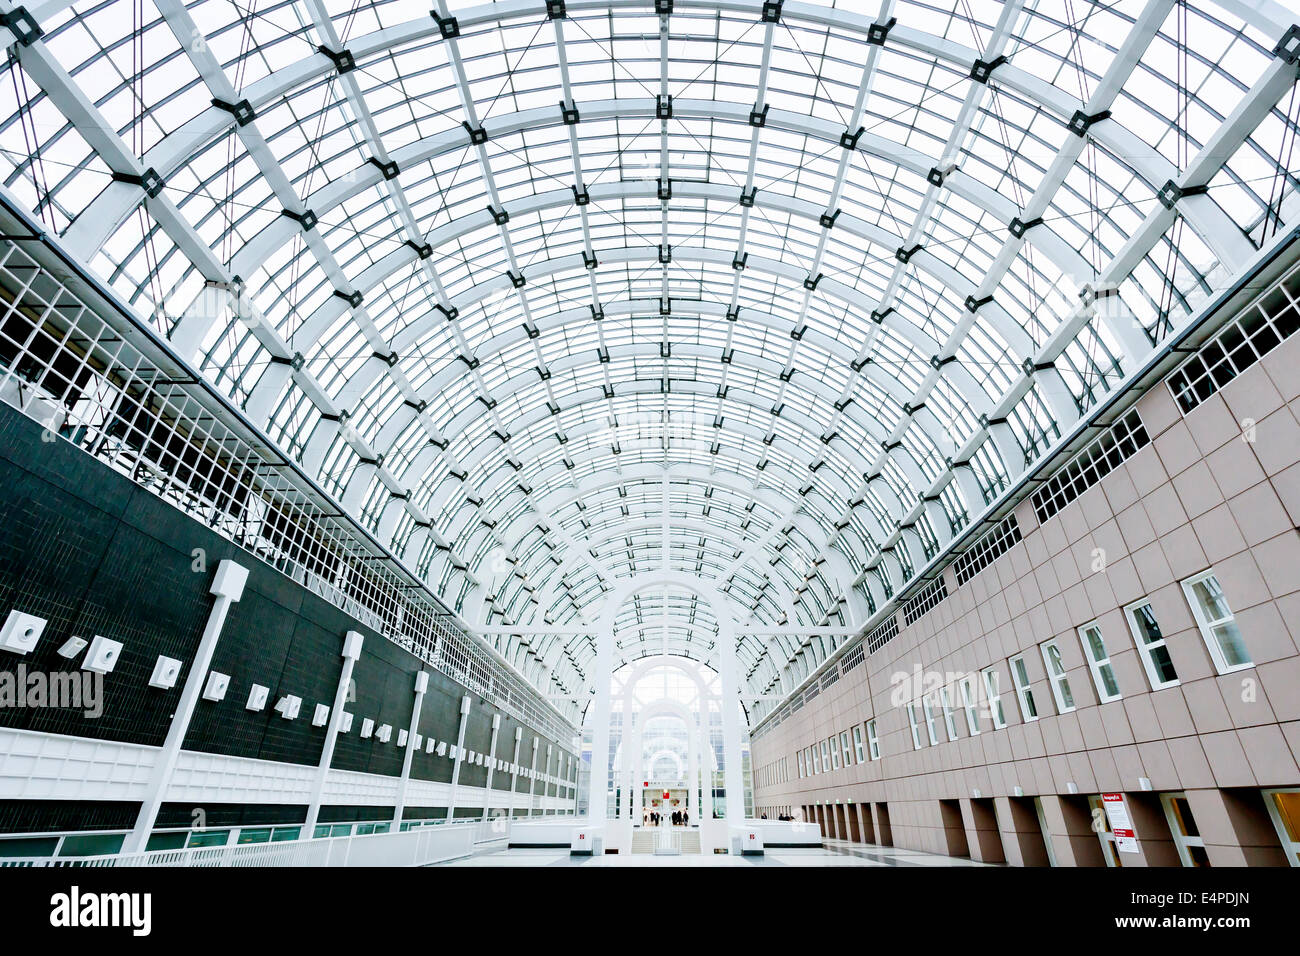 Glass roof of the Galleria exhibition hall at the Frankfurt Messe, Frankfurt am Main, Hesse, Germany - Stock Image